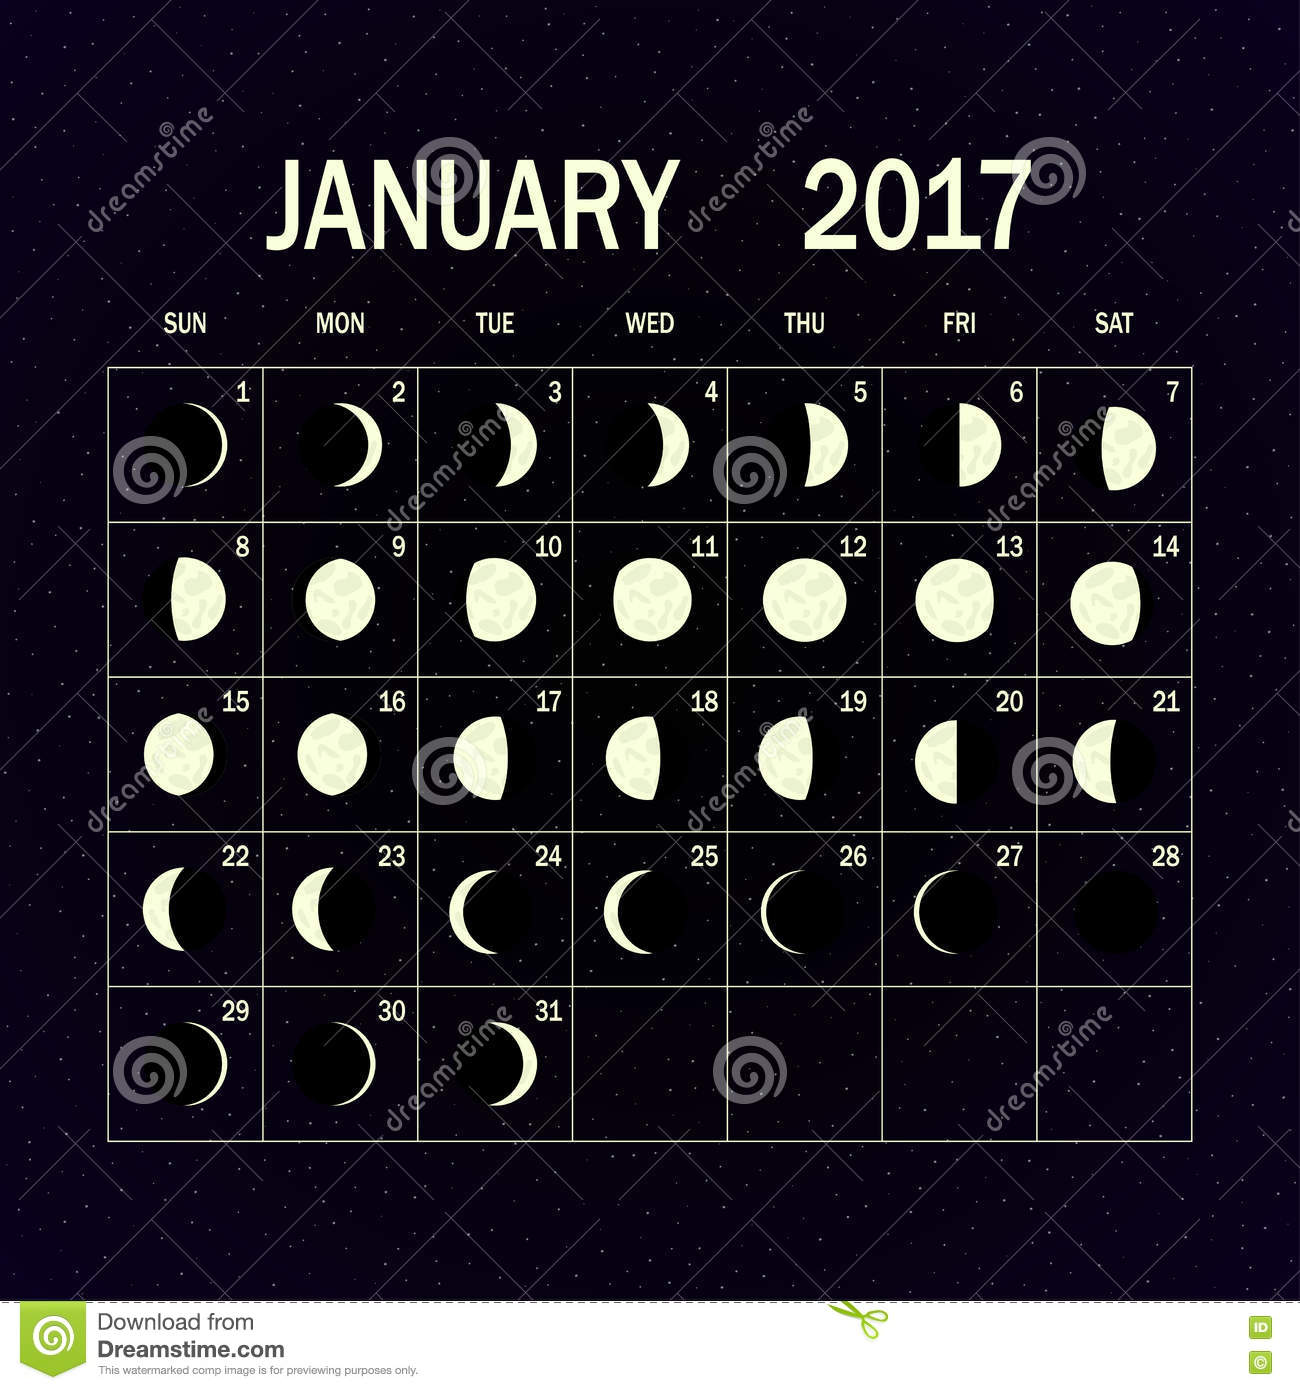 Moon Phases Calendar.Moon Phases Calendar For 2017 January Vector Illustration Stock